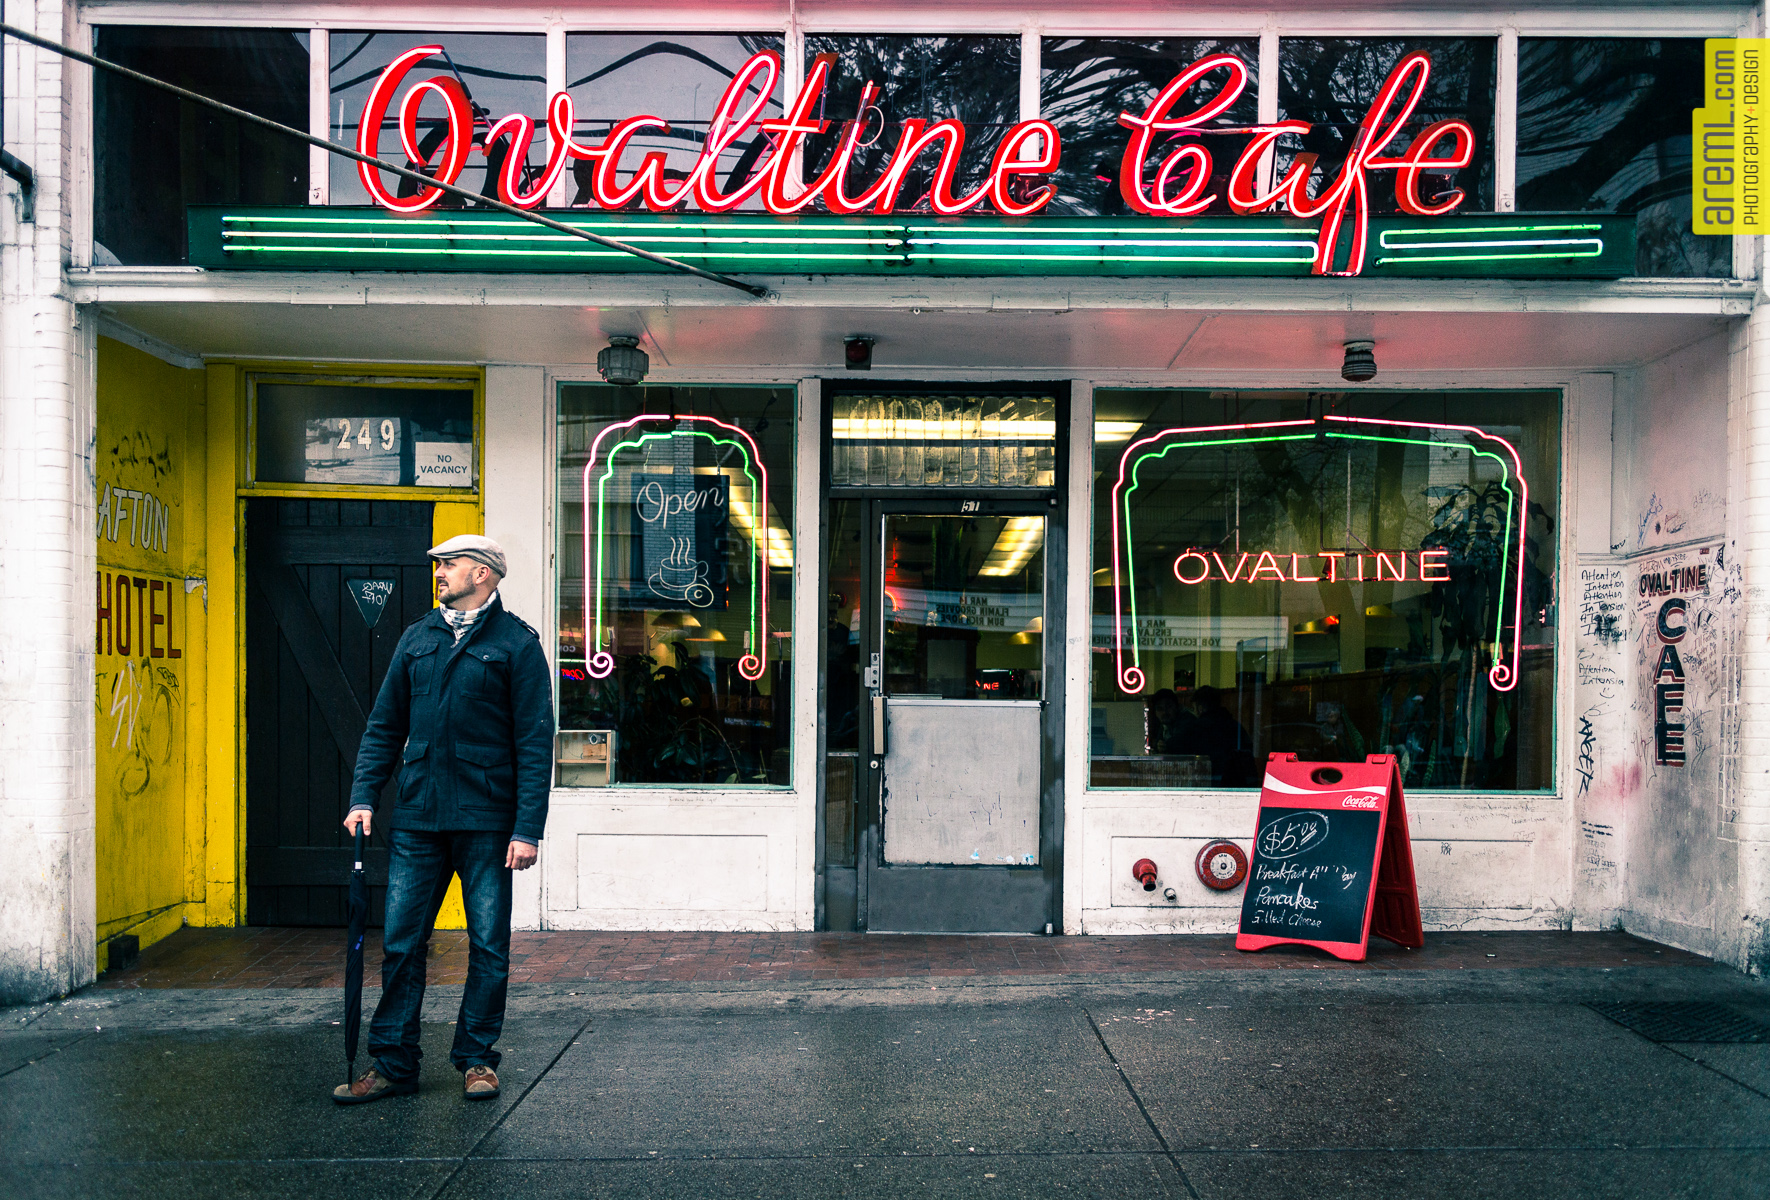 The Ovaltine Cafe is a cultural icon in Vancouver. It has just recently been revitalized. This is practically the heart of the DTES in Vancouver.